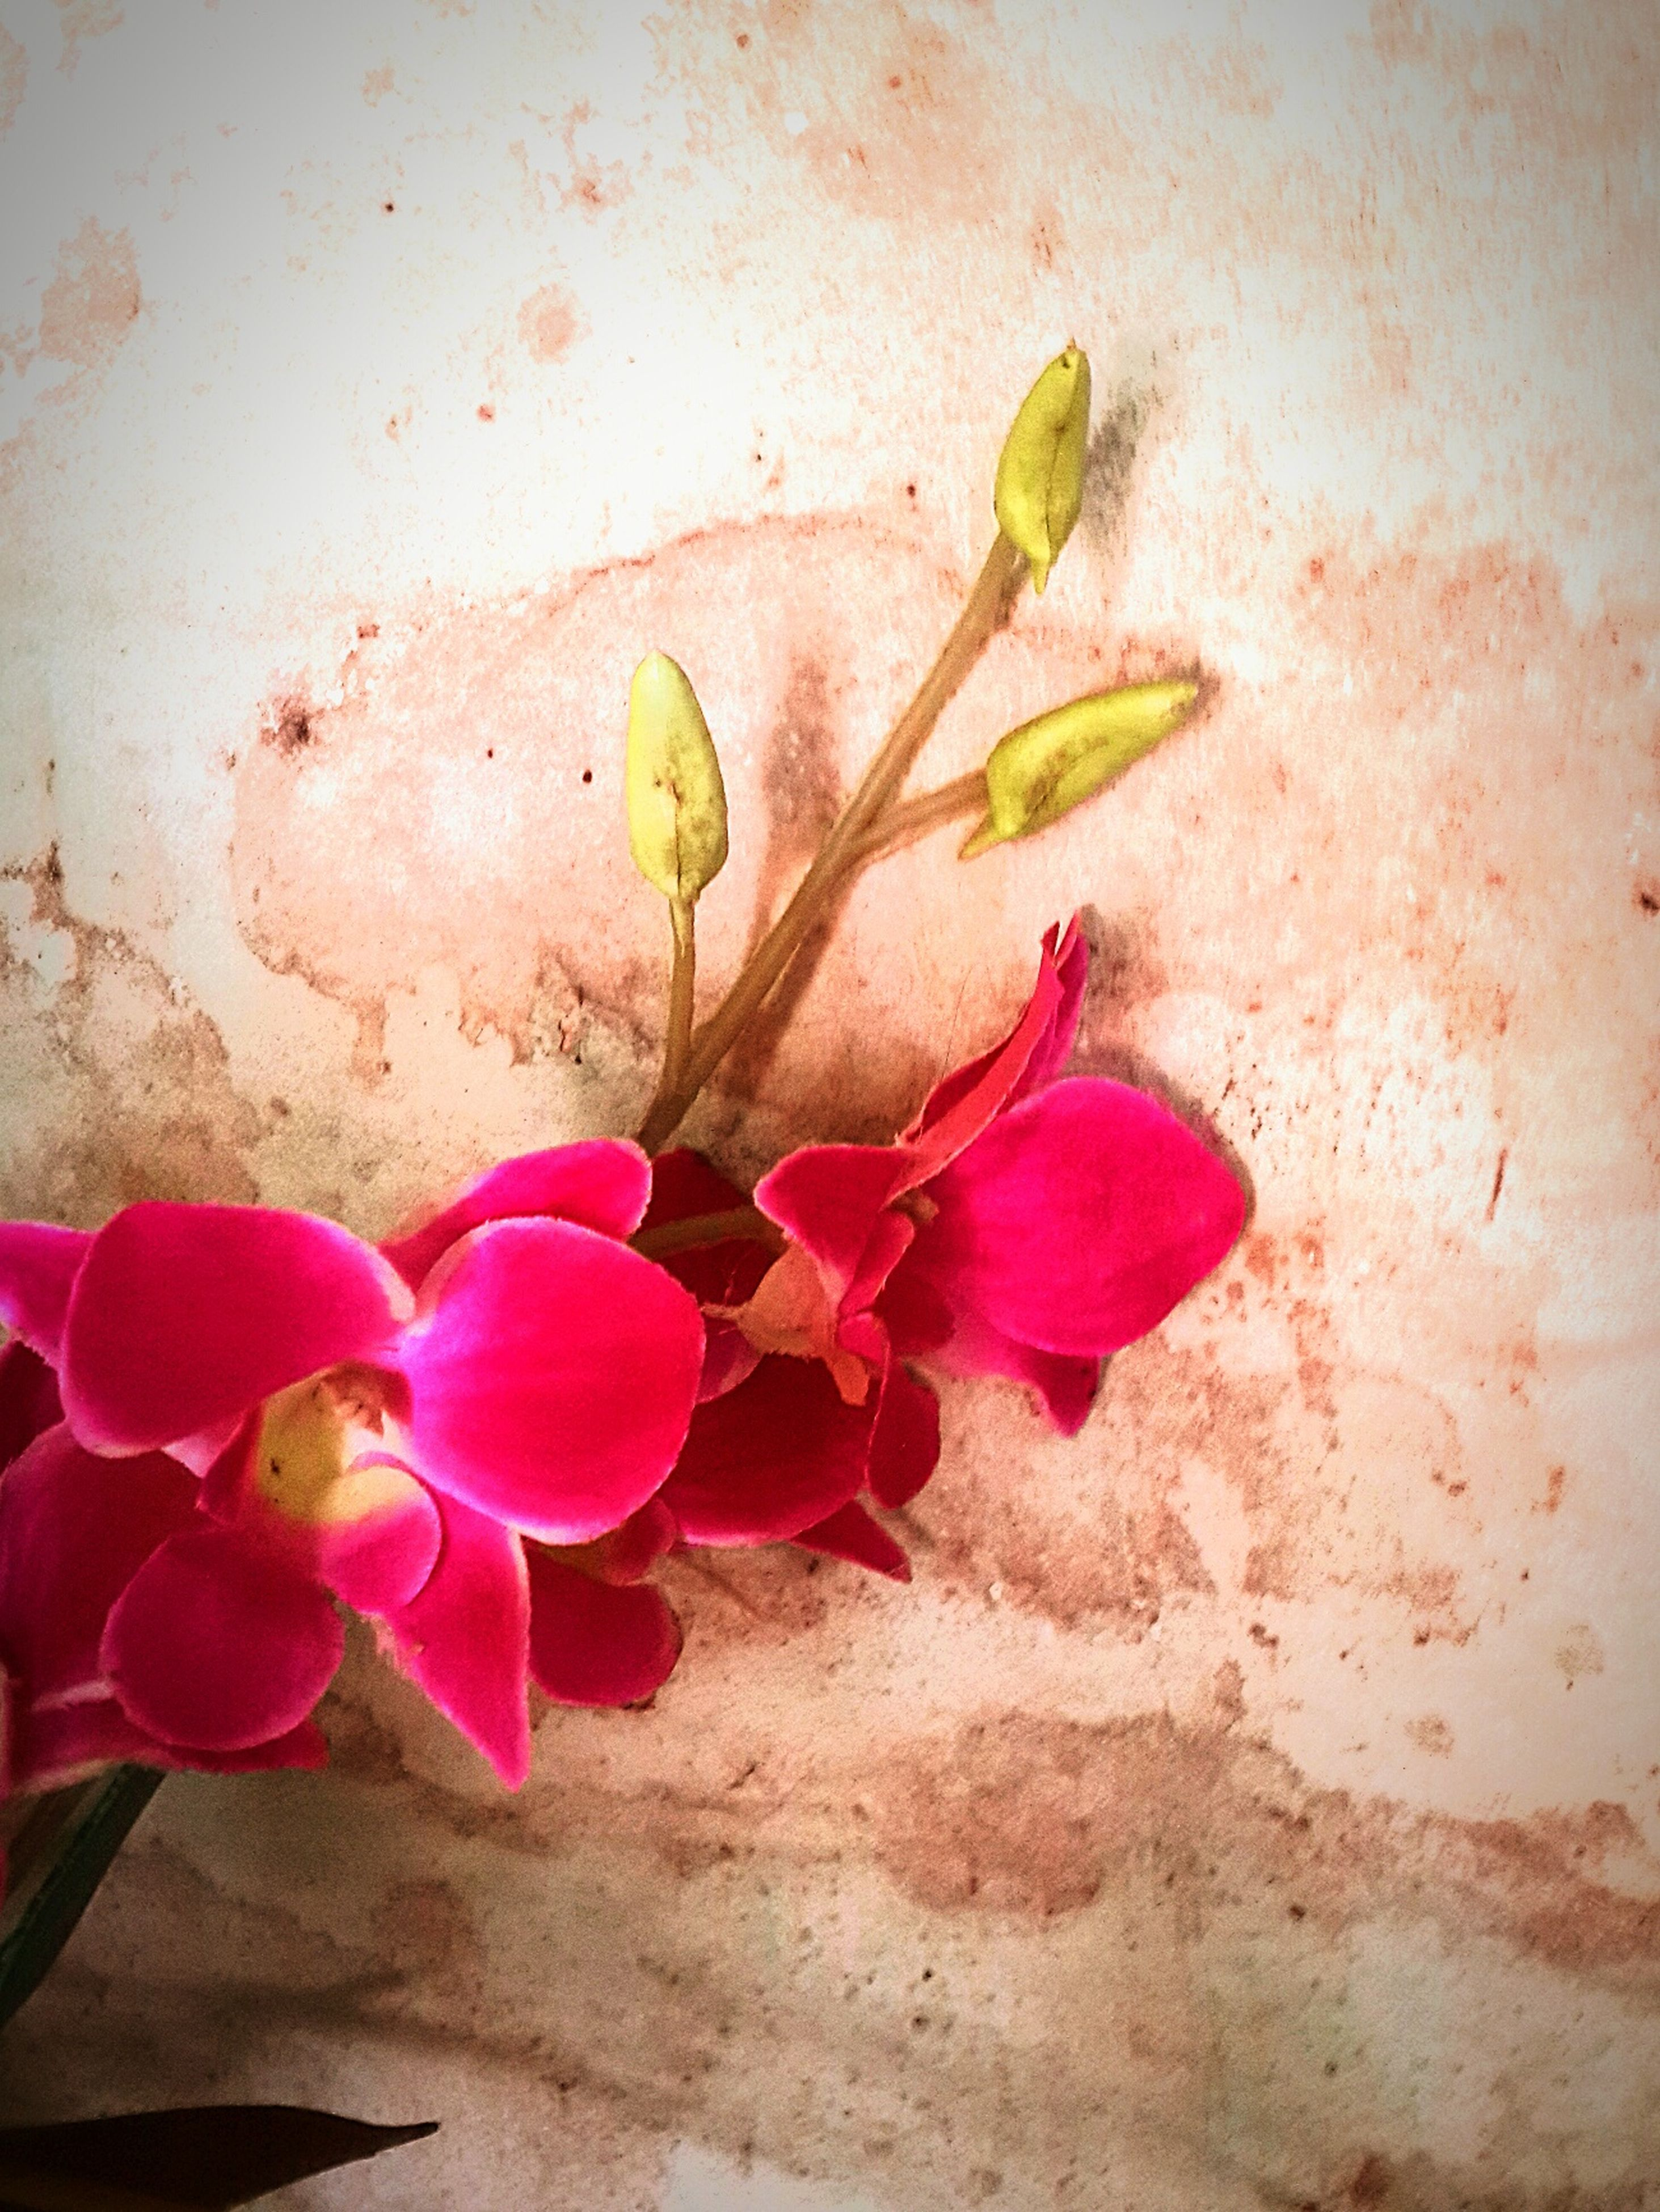 flower, petal, fragility, freshness, flower head, pink color, growth, plant, nature, beauty in nature, close-up, leaf, wall - building feature, high angle view, blooming, stem, no people, in bloom, day, blossom